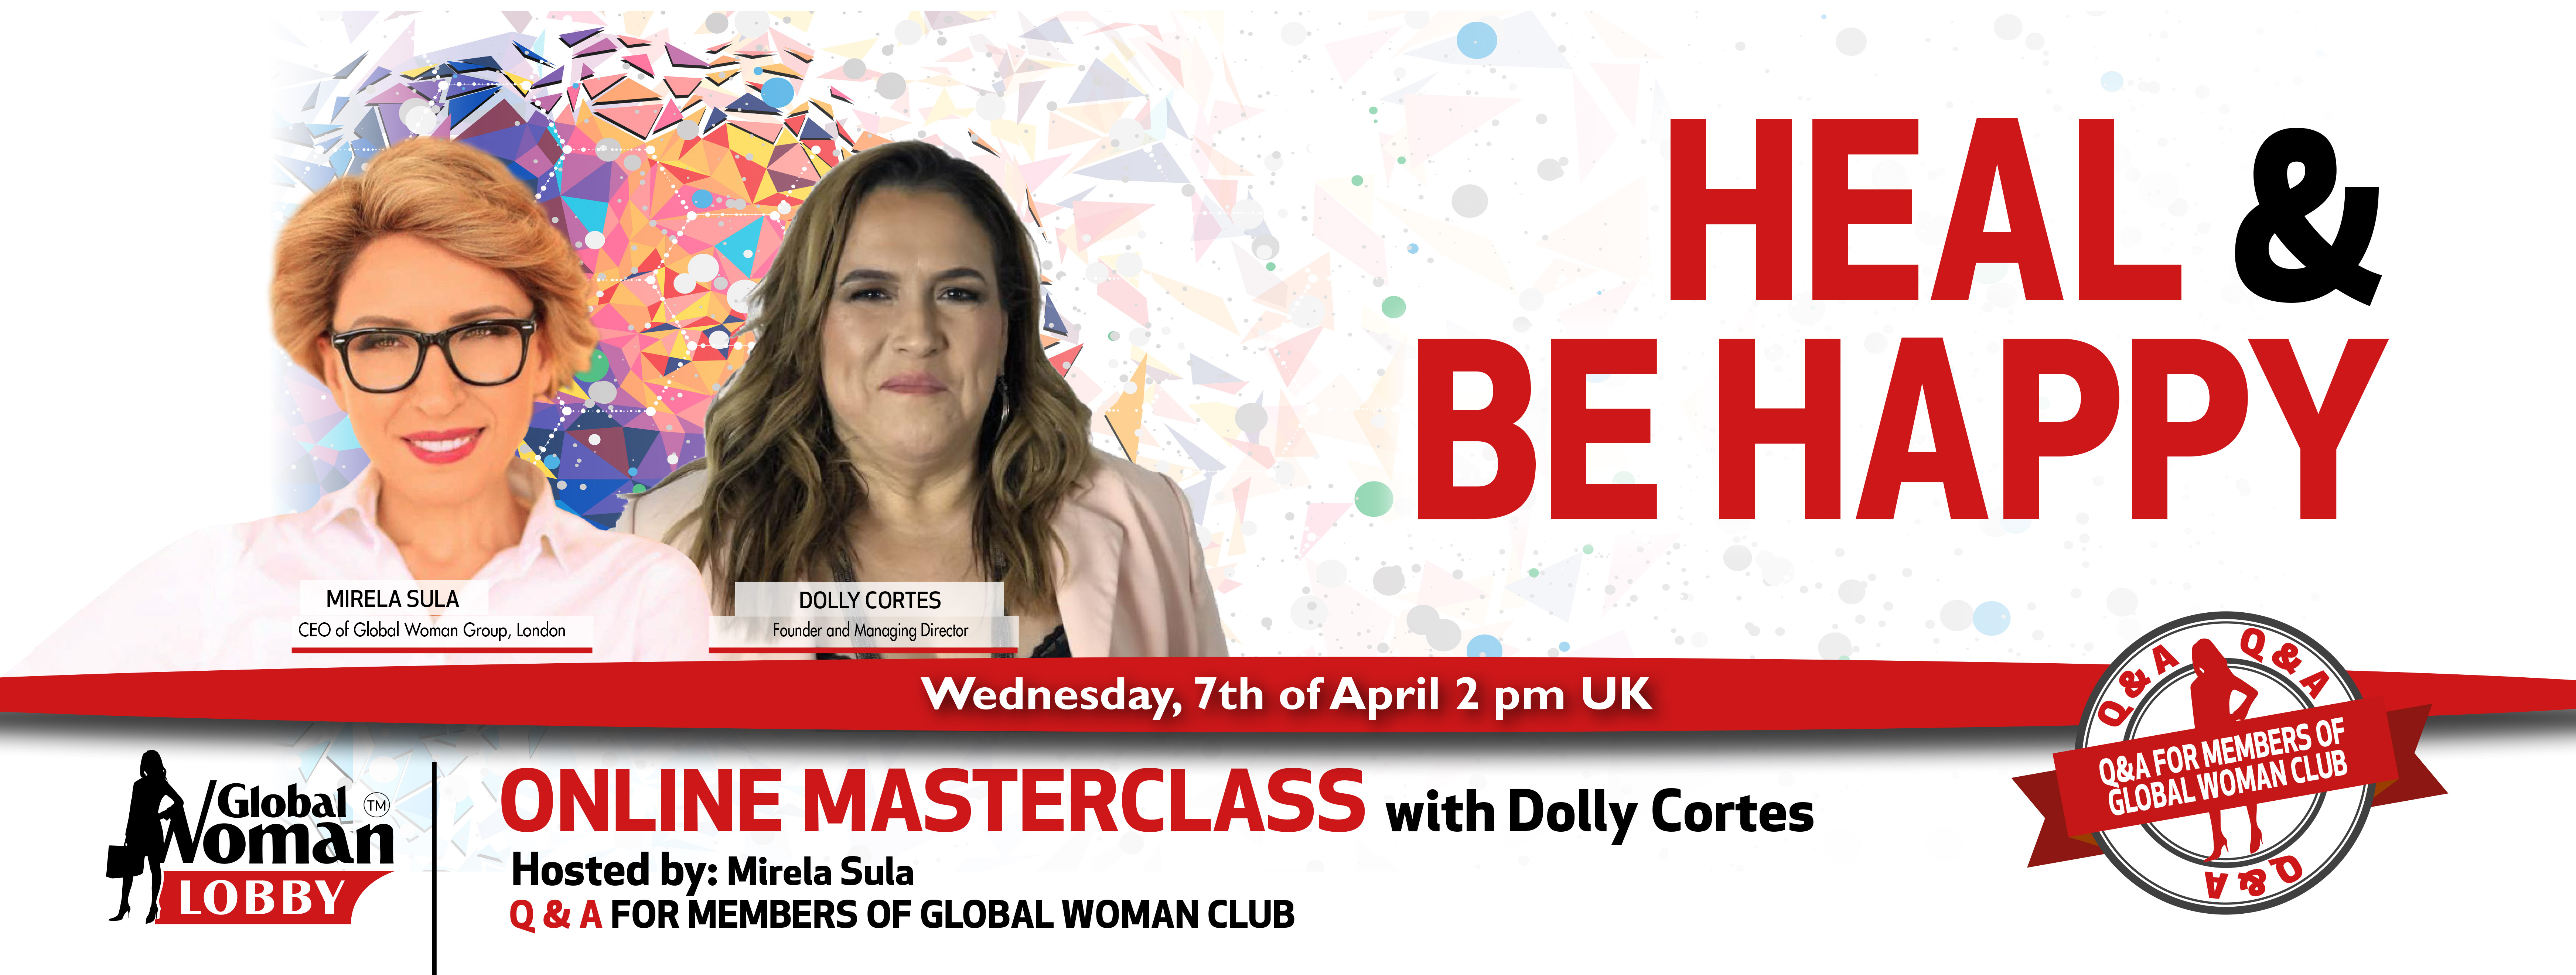 Online Masterclass with Dolly Cortes